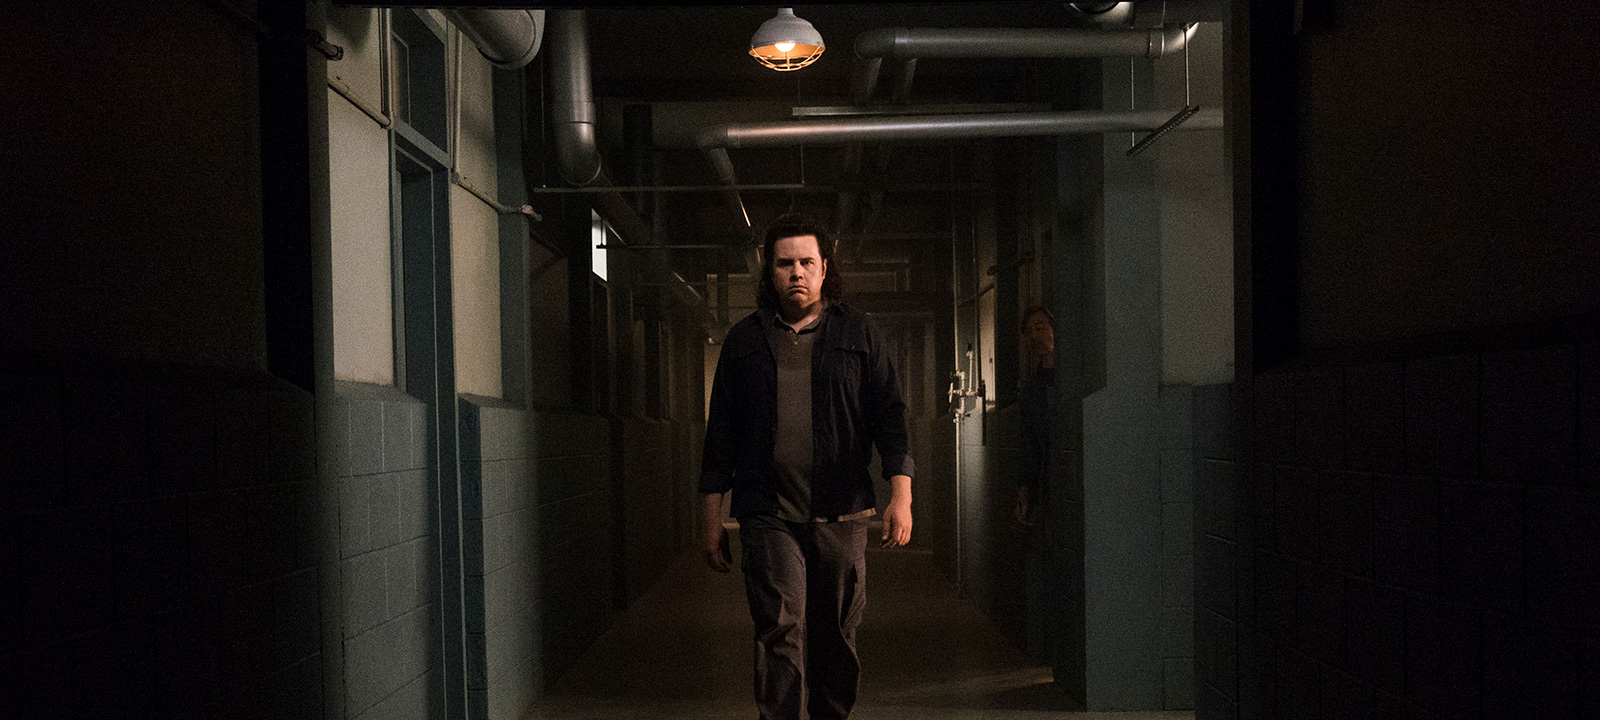 the-walking-dead-episode-807-eugene-mcdermitt-800×600-interview